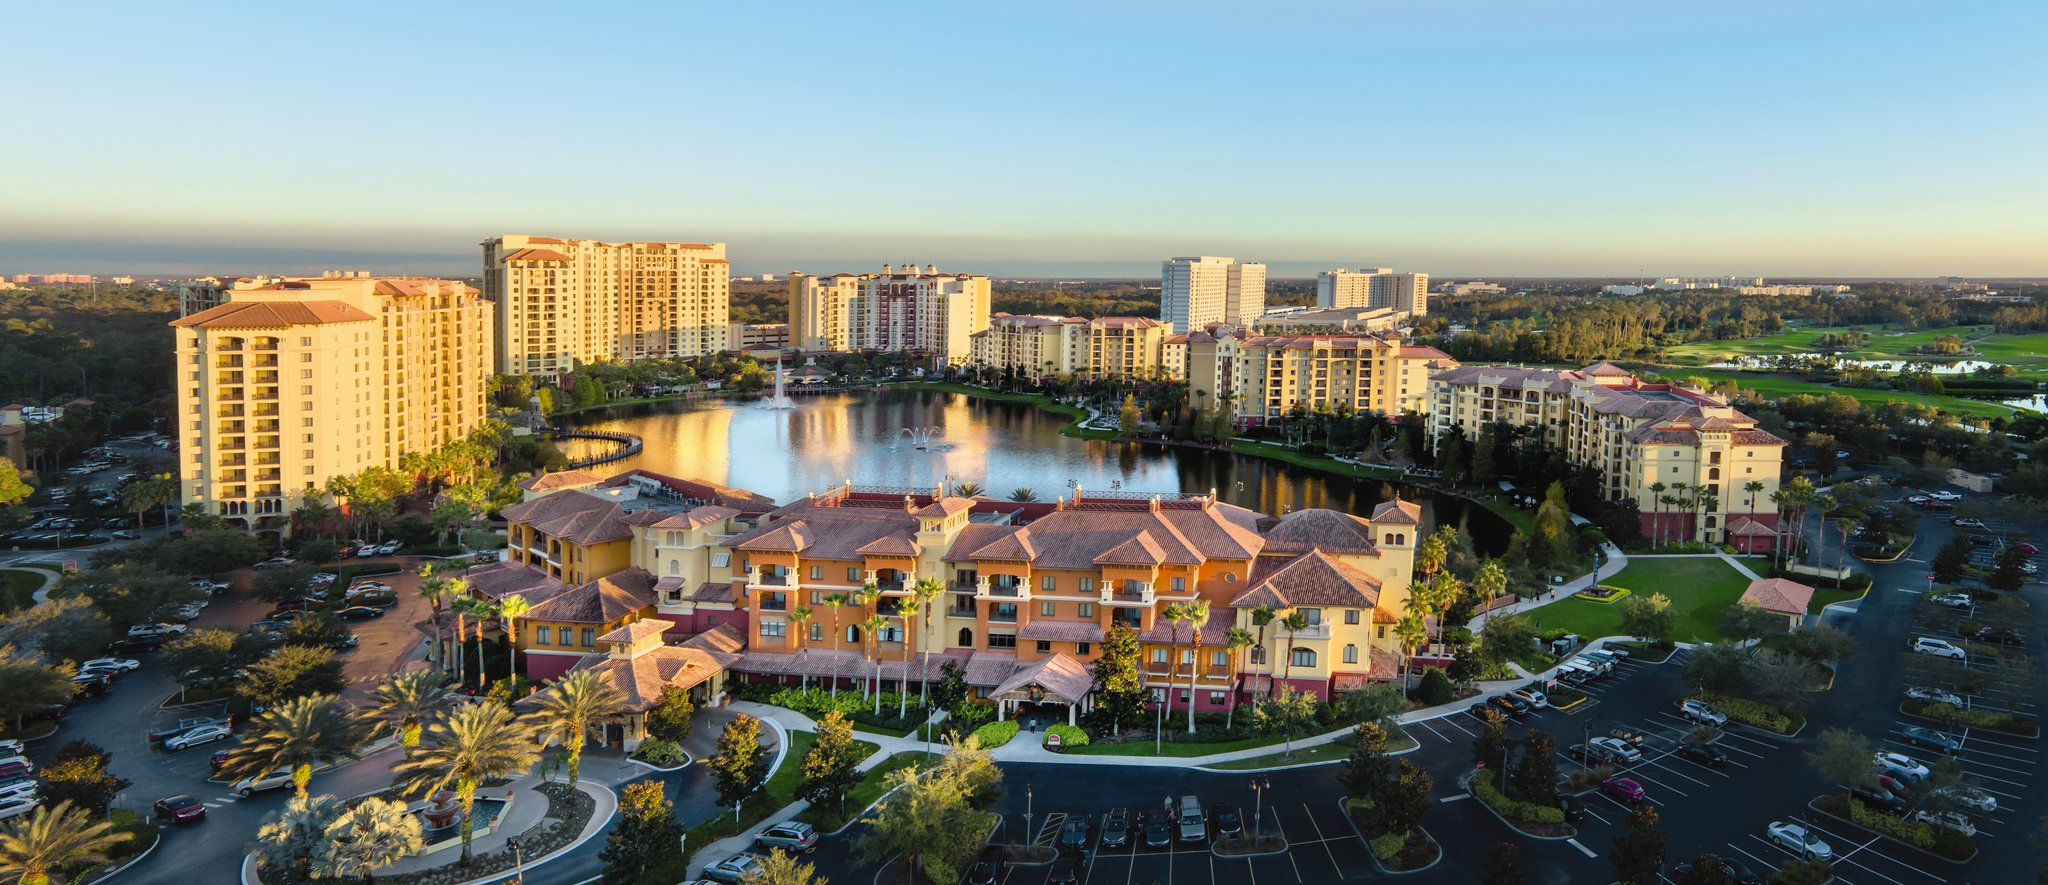 Wyndham Bonnet Creek Resort Photo Gallery Explore The Exceptional Accommodations And Facilities Of